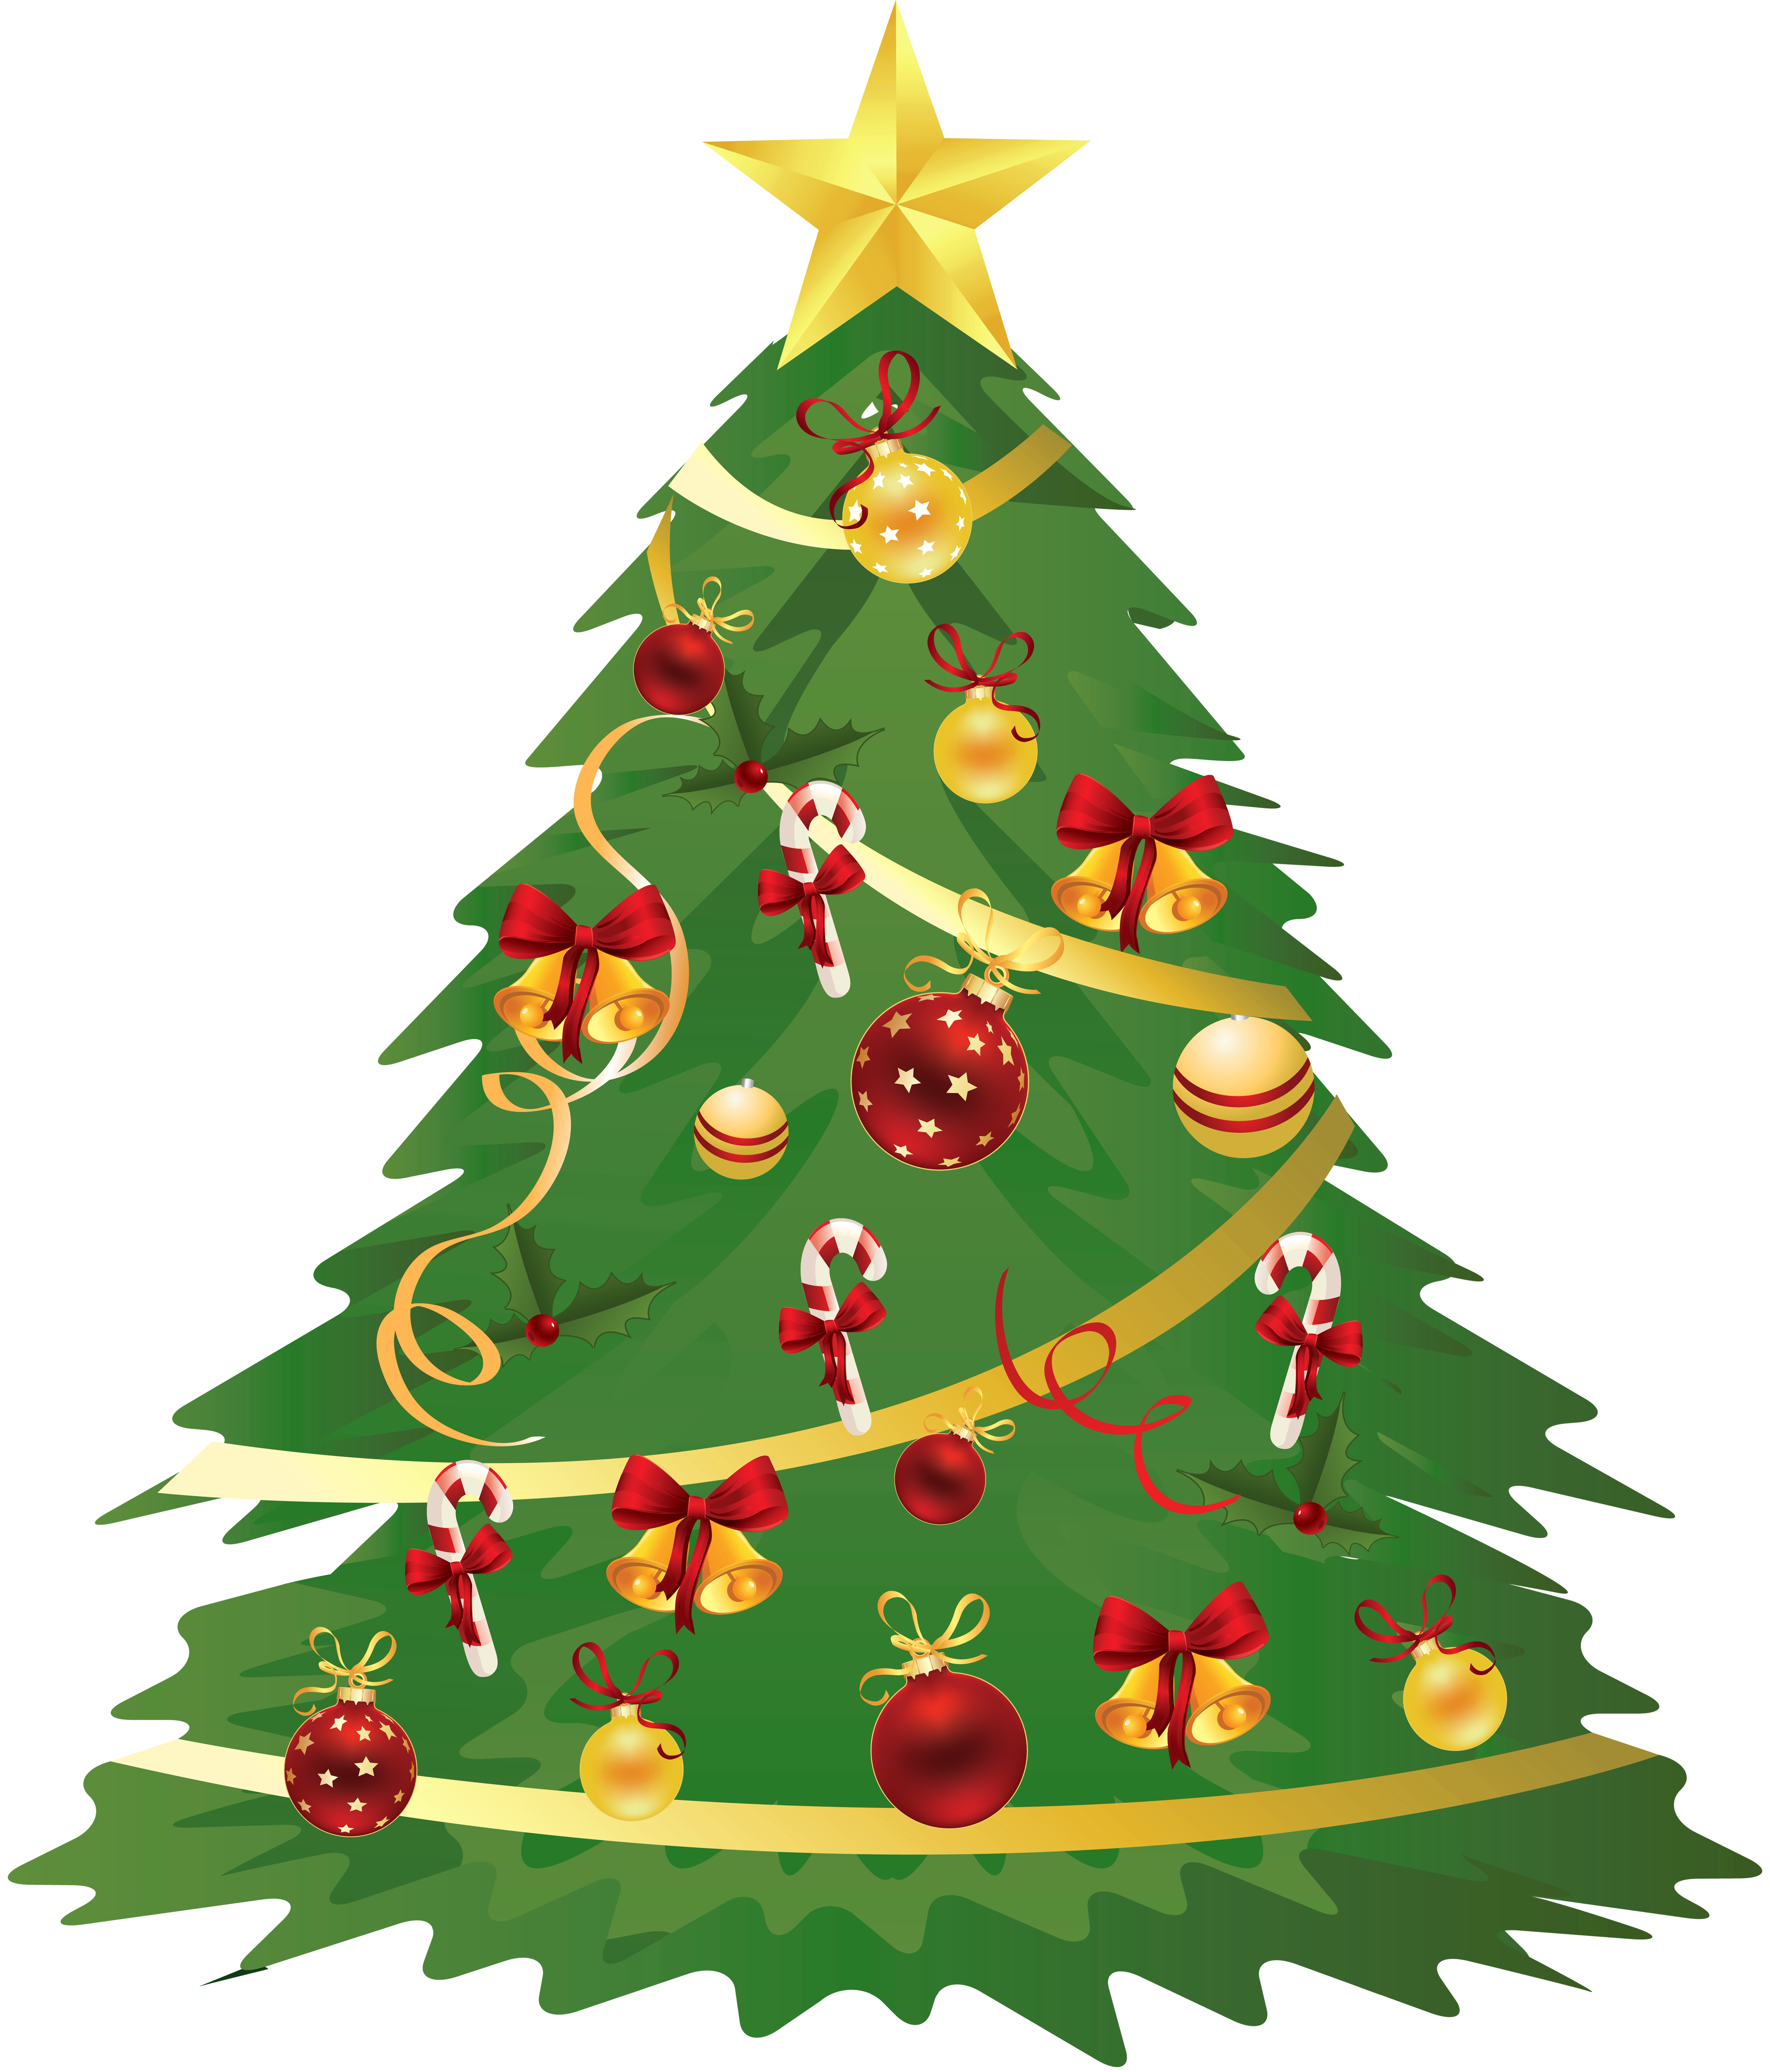 Merry clipart christmas tree ornament. Gallery yopriceville com downloadfullsize